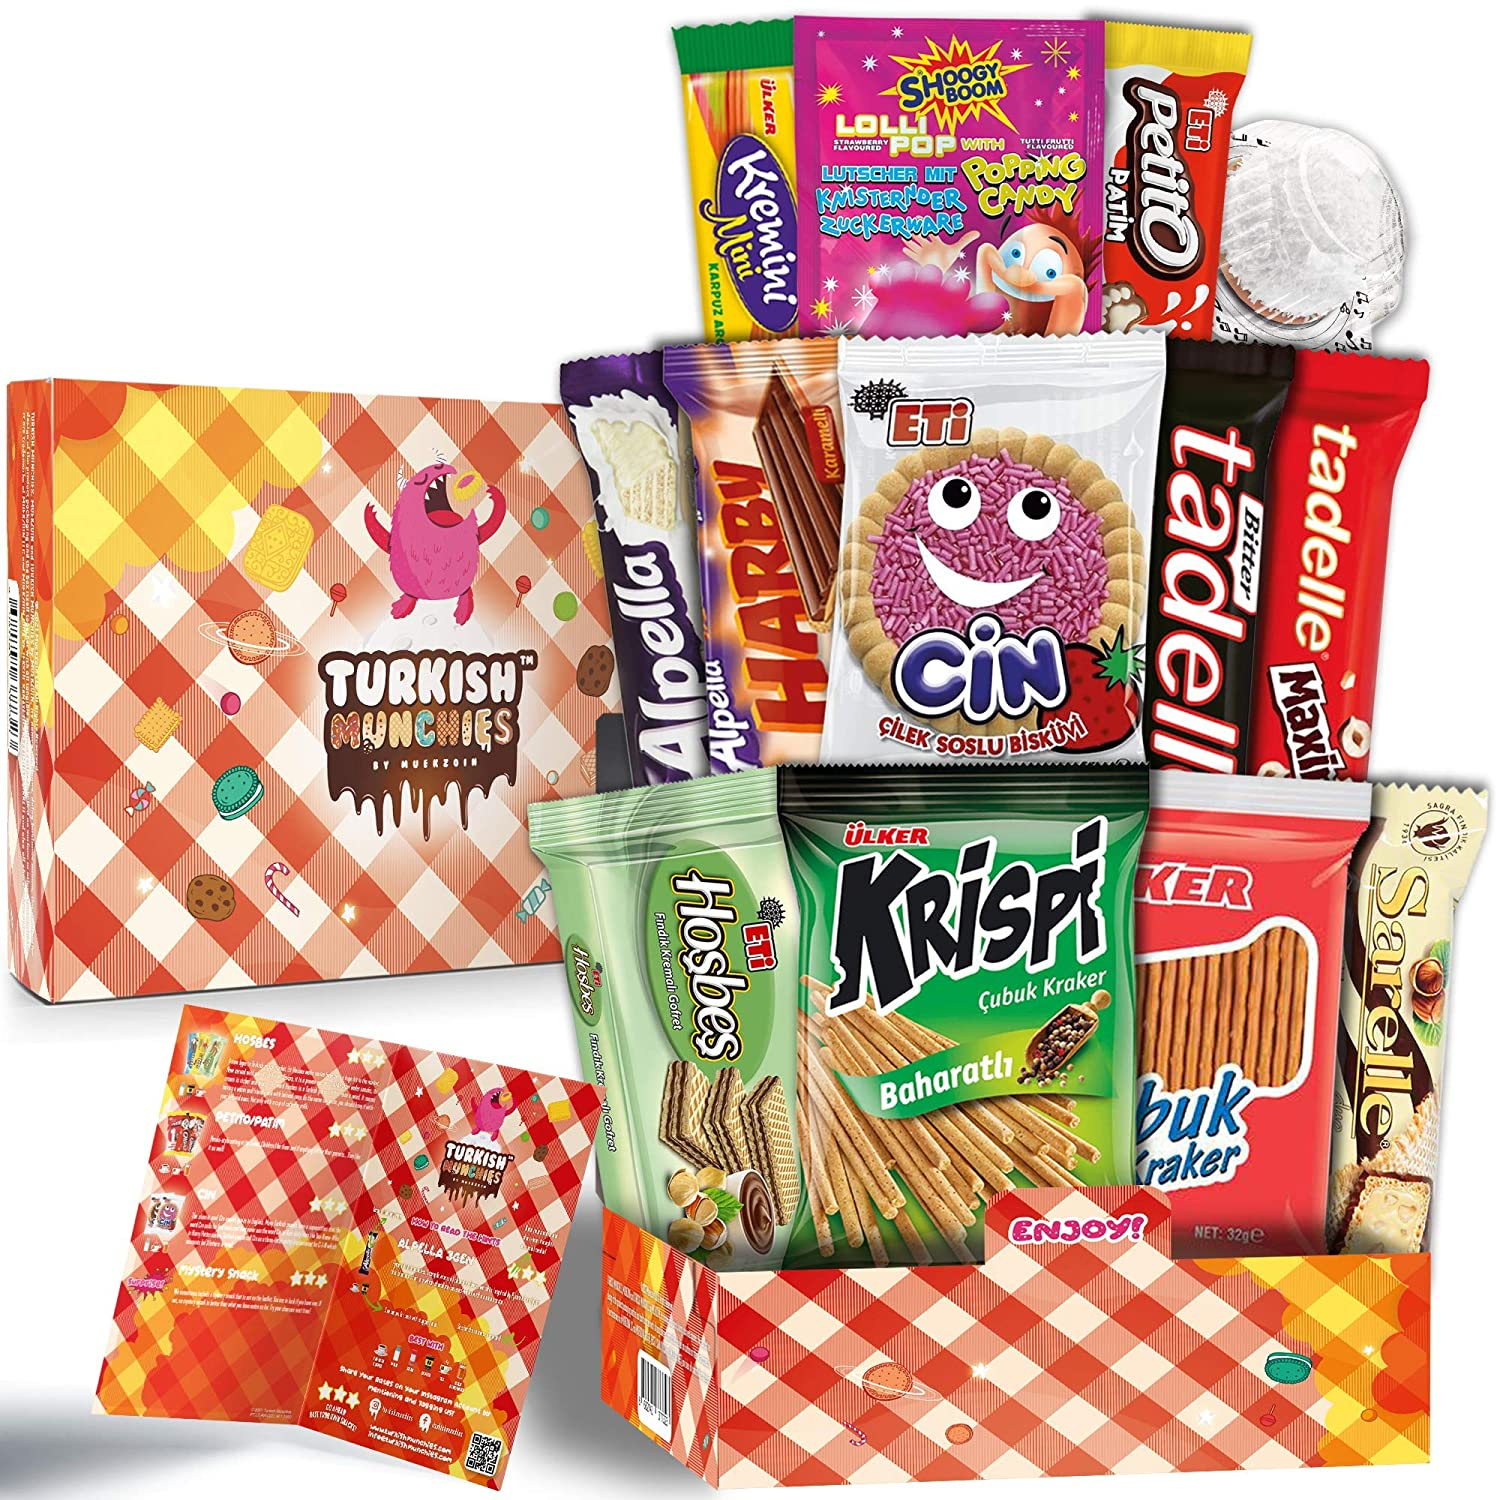 Midi Picnic Time Premium International Snacks Box Variety Pack Care Package for Adults and Kids, Ultimate Assortment of Turkish Treats, Mix pack of snacks, Best Foreign Candy or Foreign Snacks Box